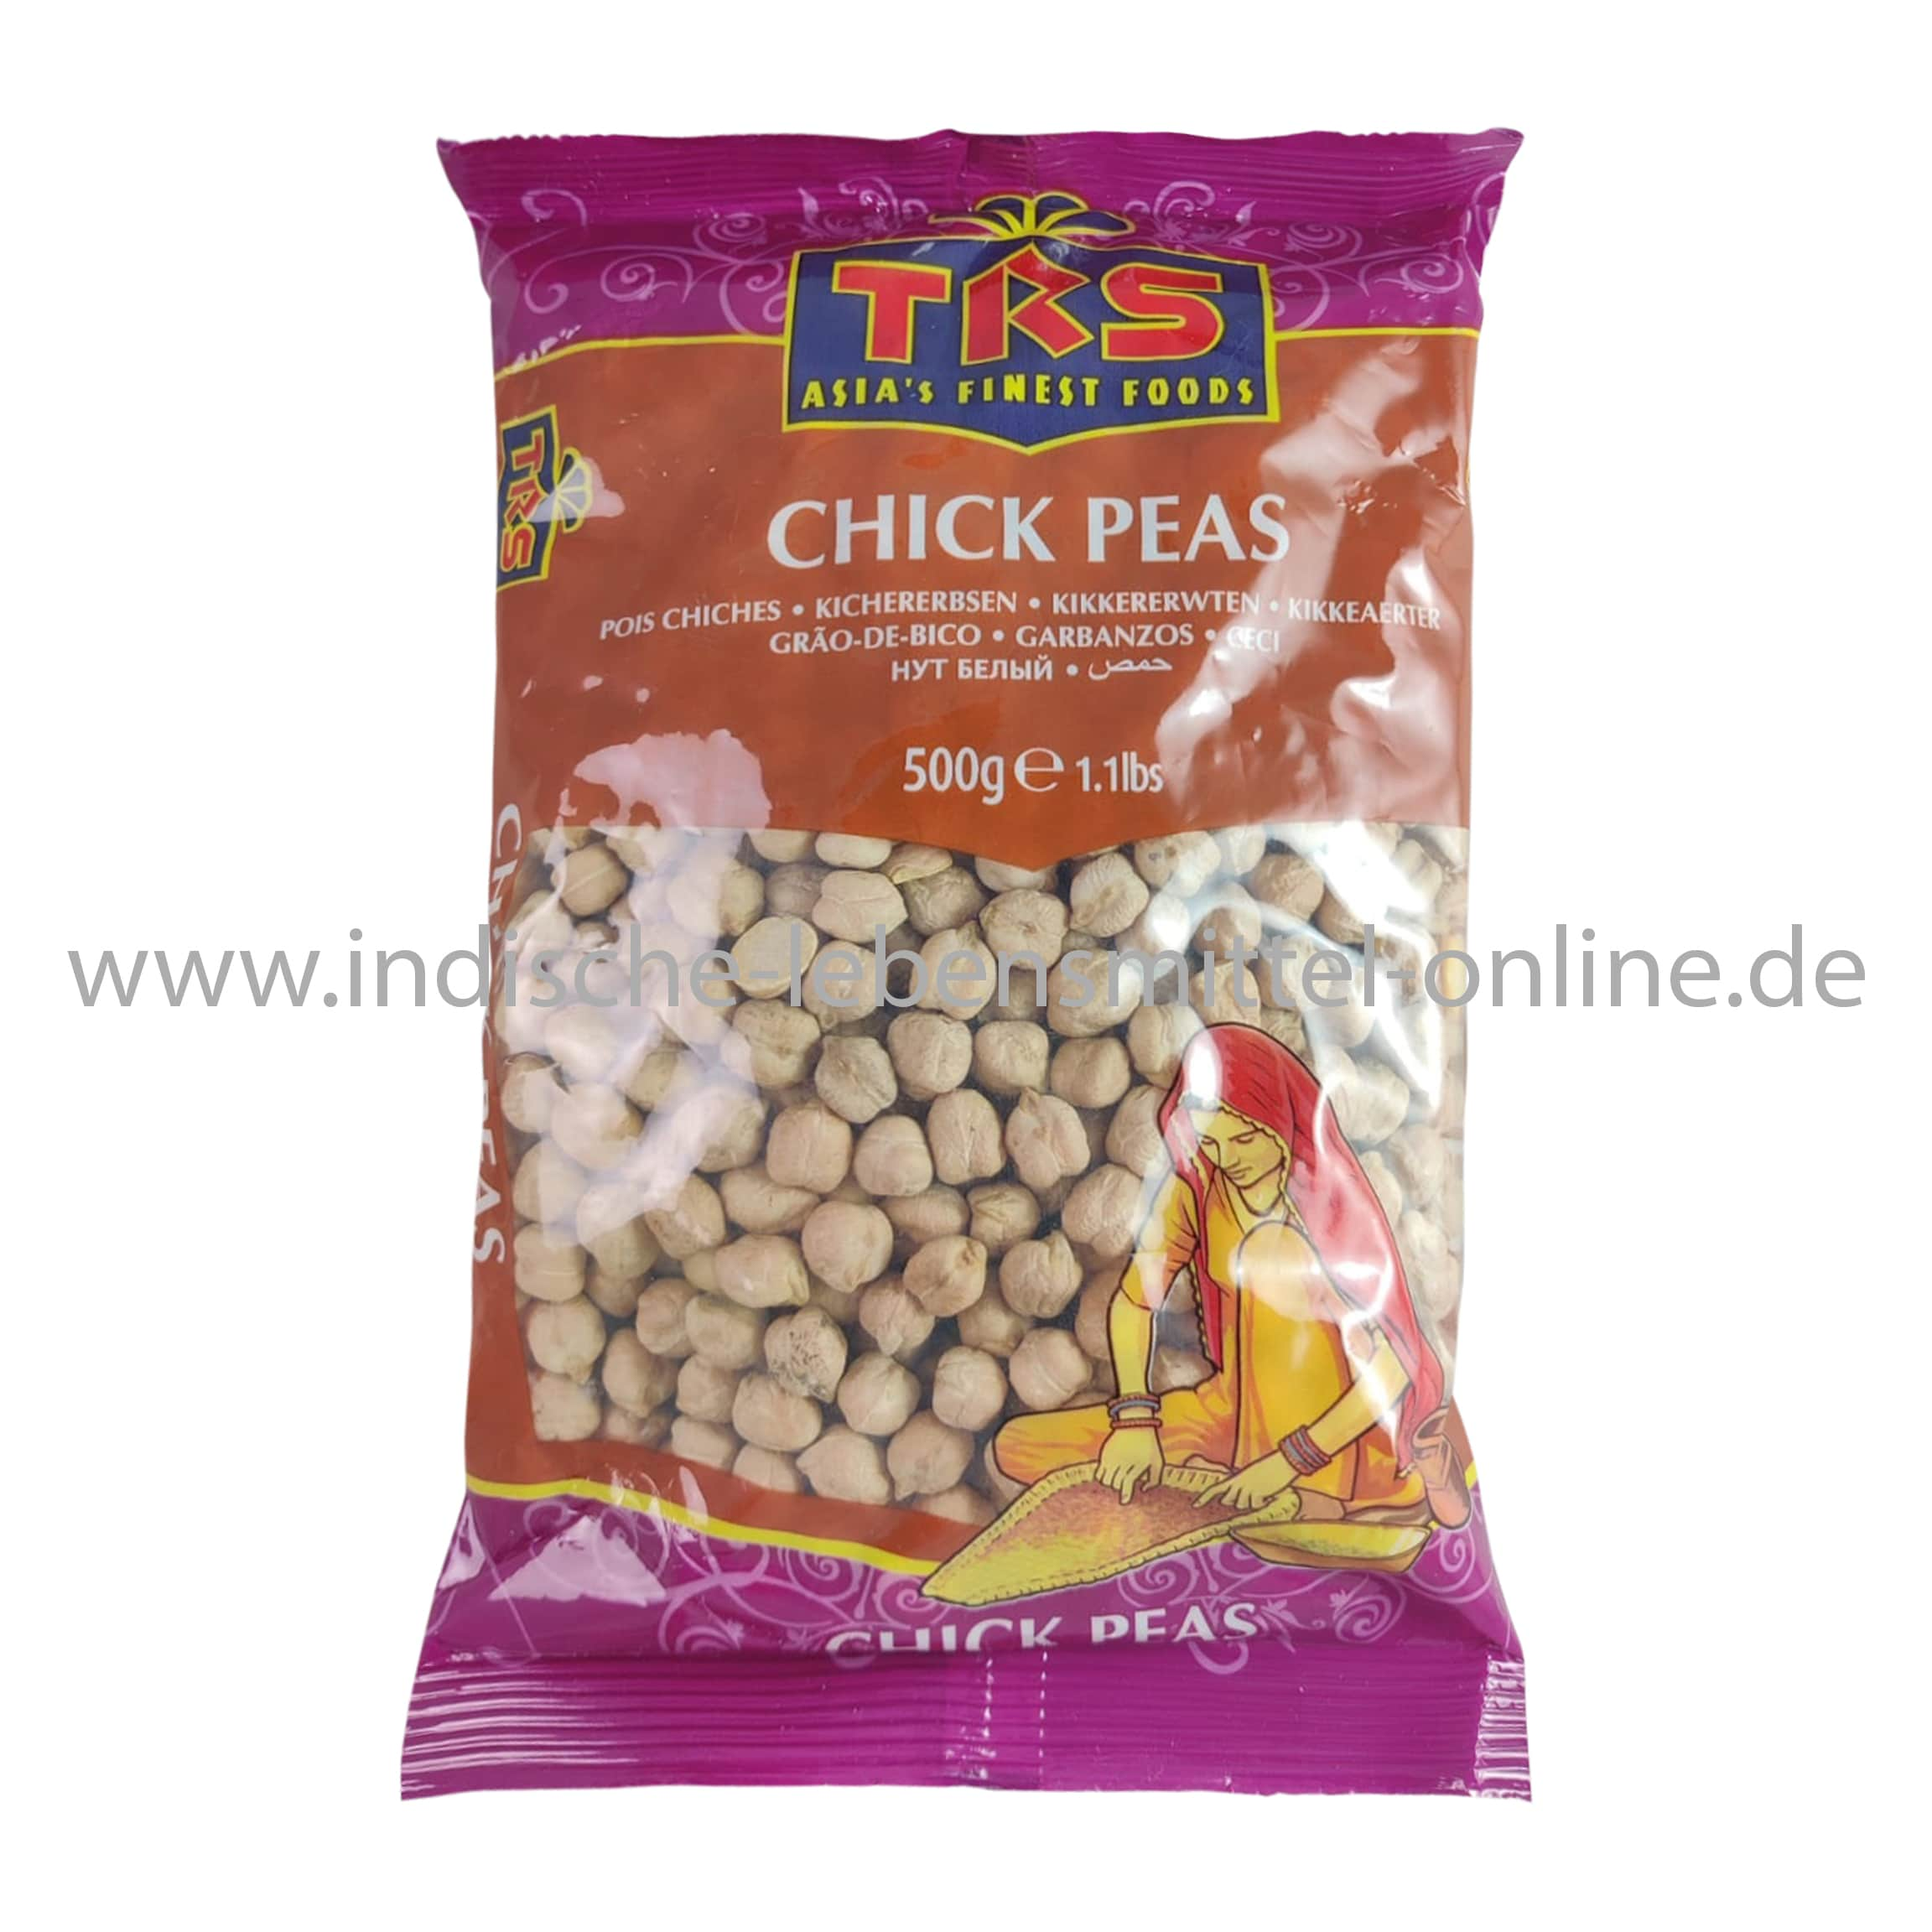 kichererbsen-chickpeas-chole-channa-trs